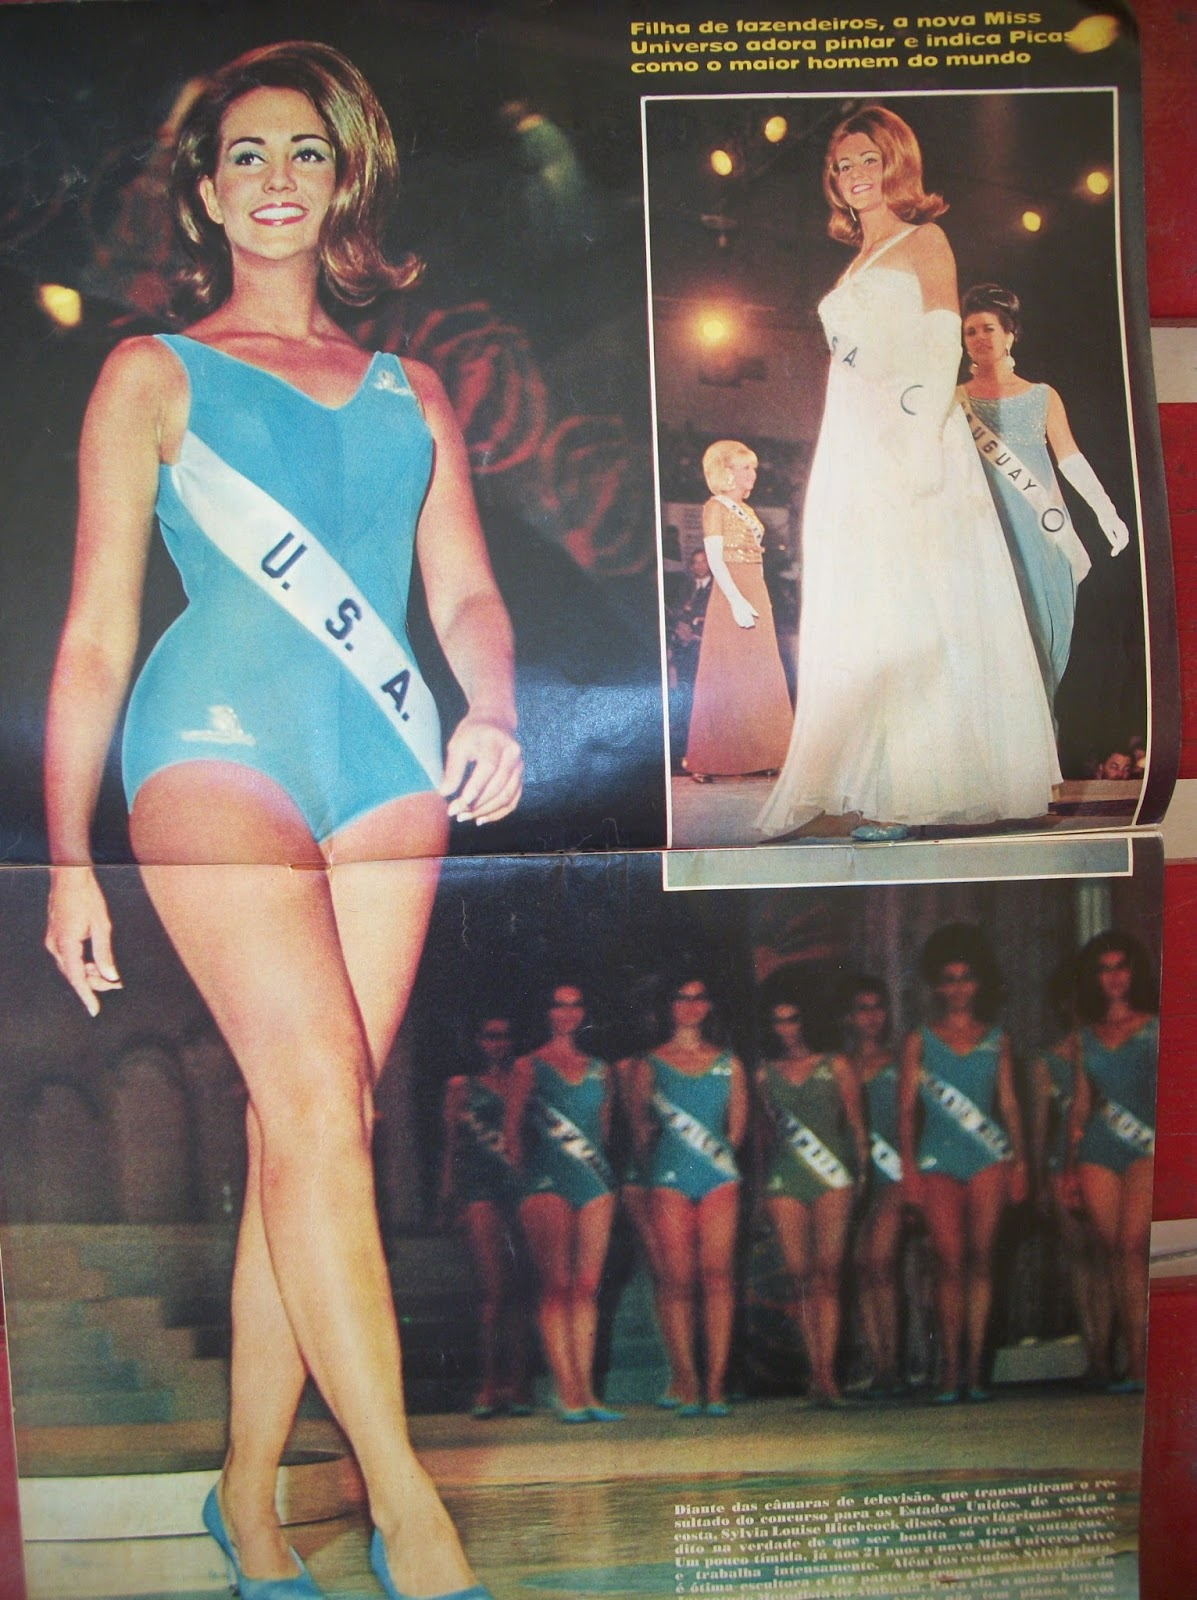 sylvia hitchcock, miss universe 1967. † 100_0212